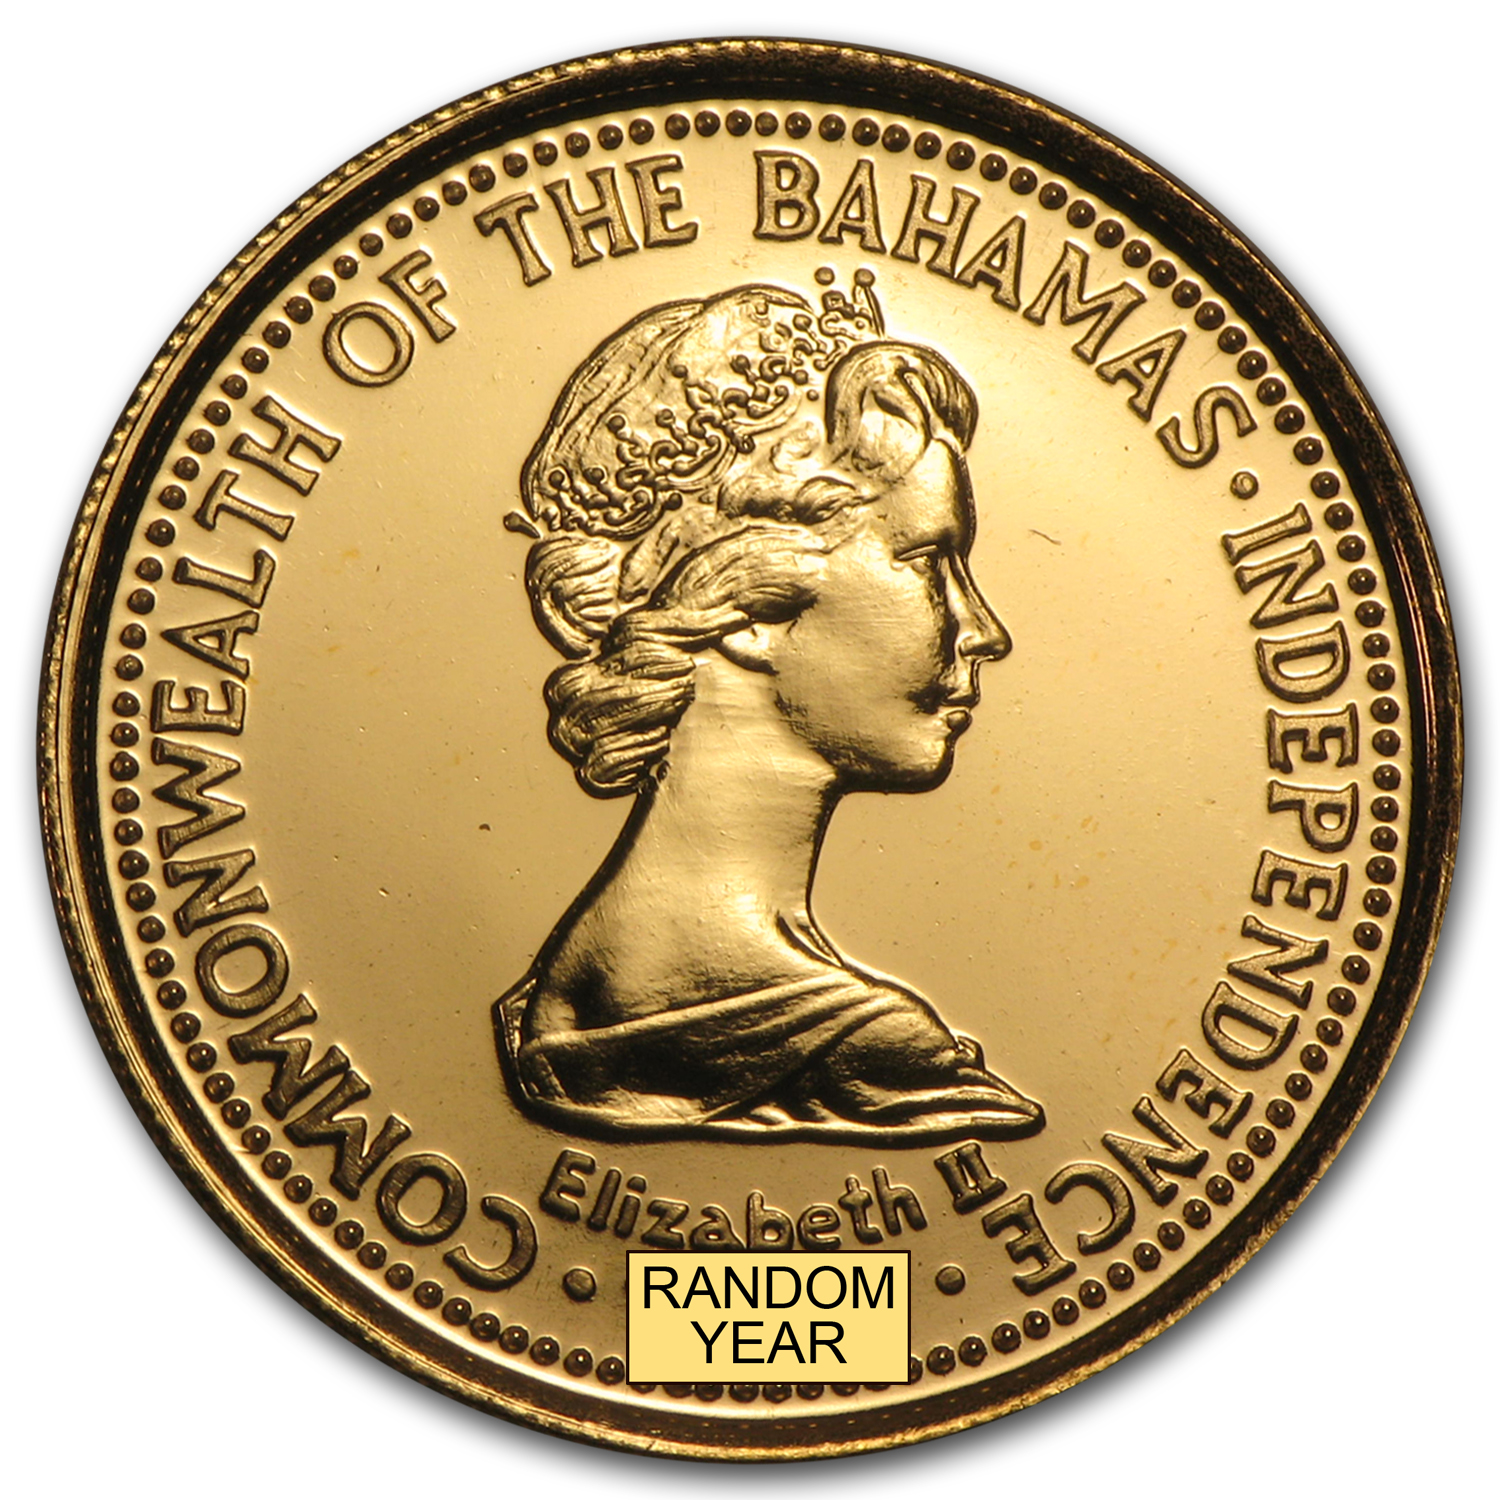 1974-77 Bahamas Gold 100 Dollars BU/Proof (Random)